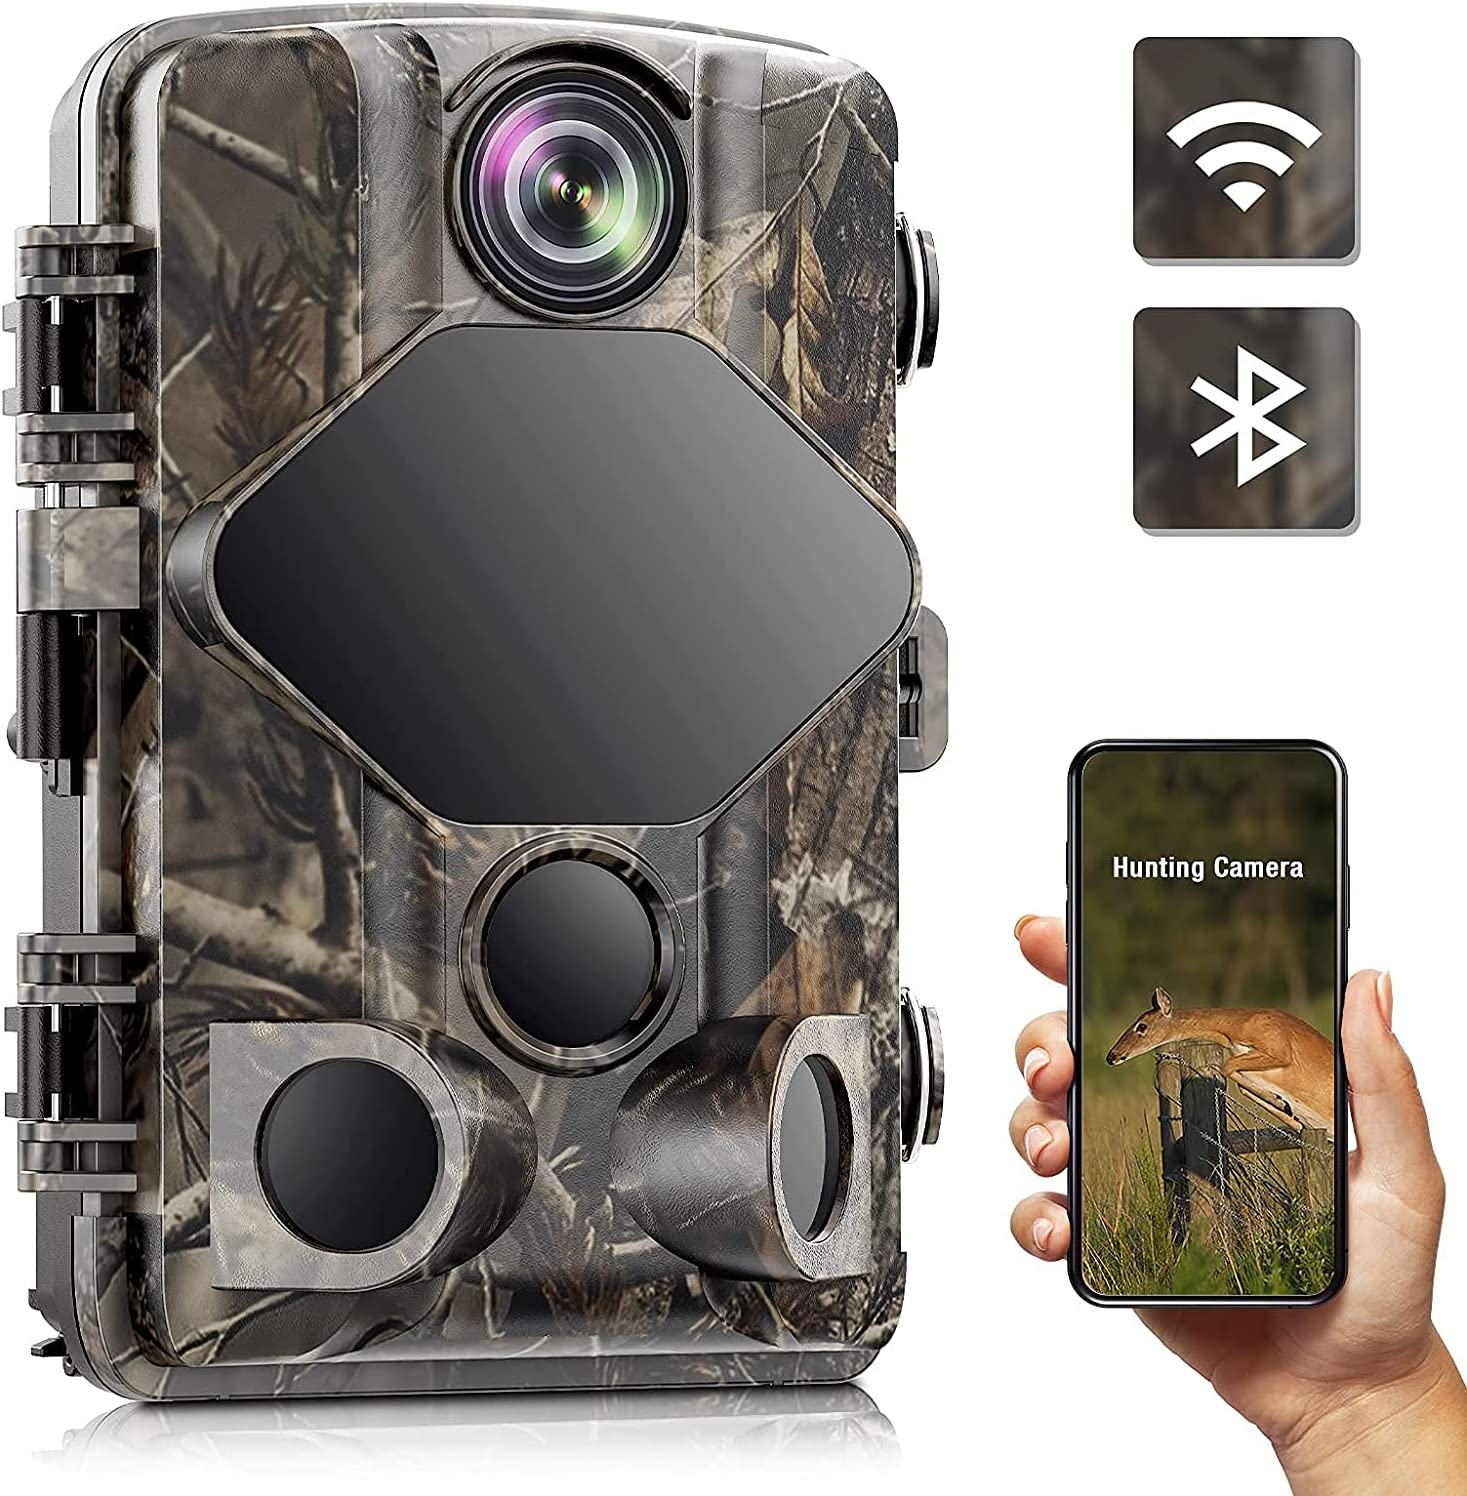 4K Trail Camera 24MP 2160P WiFi Bluetooth Hunting Camera, Night Vision Motion Activated Waterproof, No Glow IR LEDs, 0.2s Trigger Time, Game Innovation for Wildlife Hunting, Farm